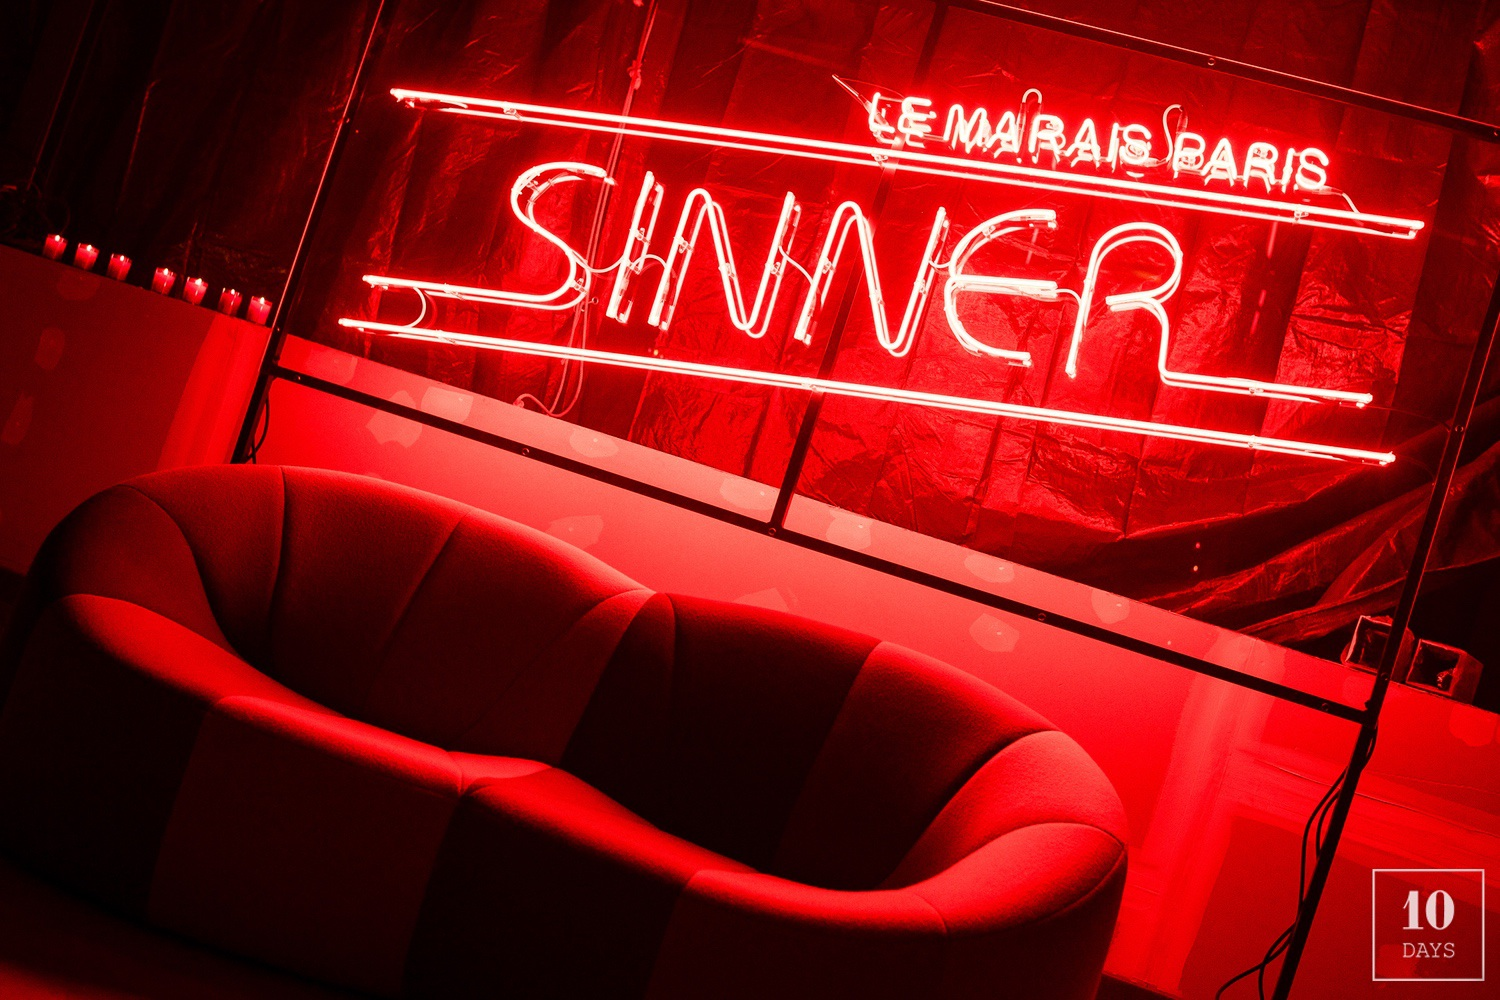 Sinner Hotel Le Marais – Pre Opening / Construction Party